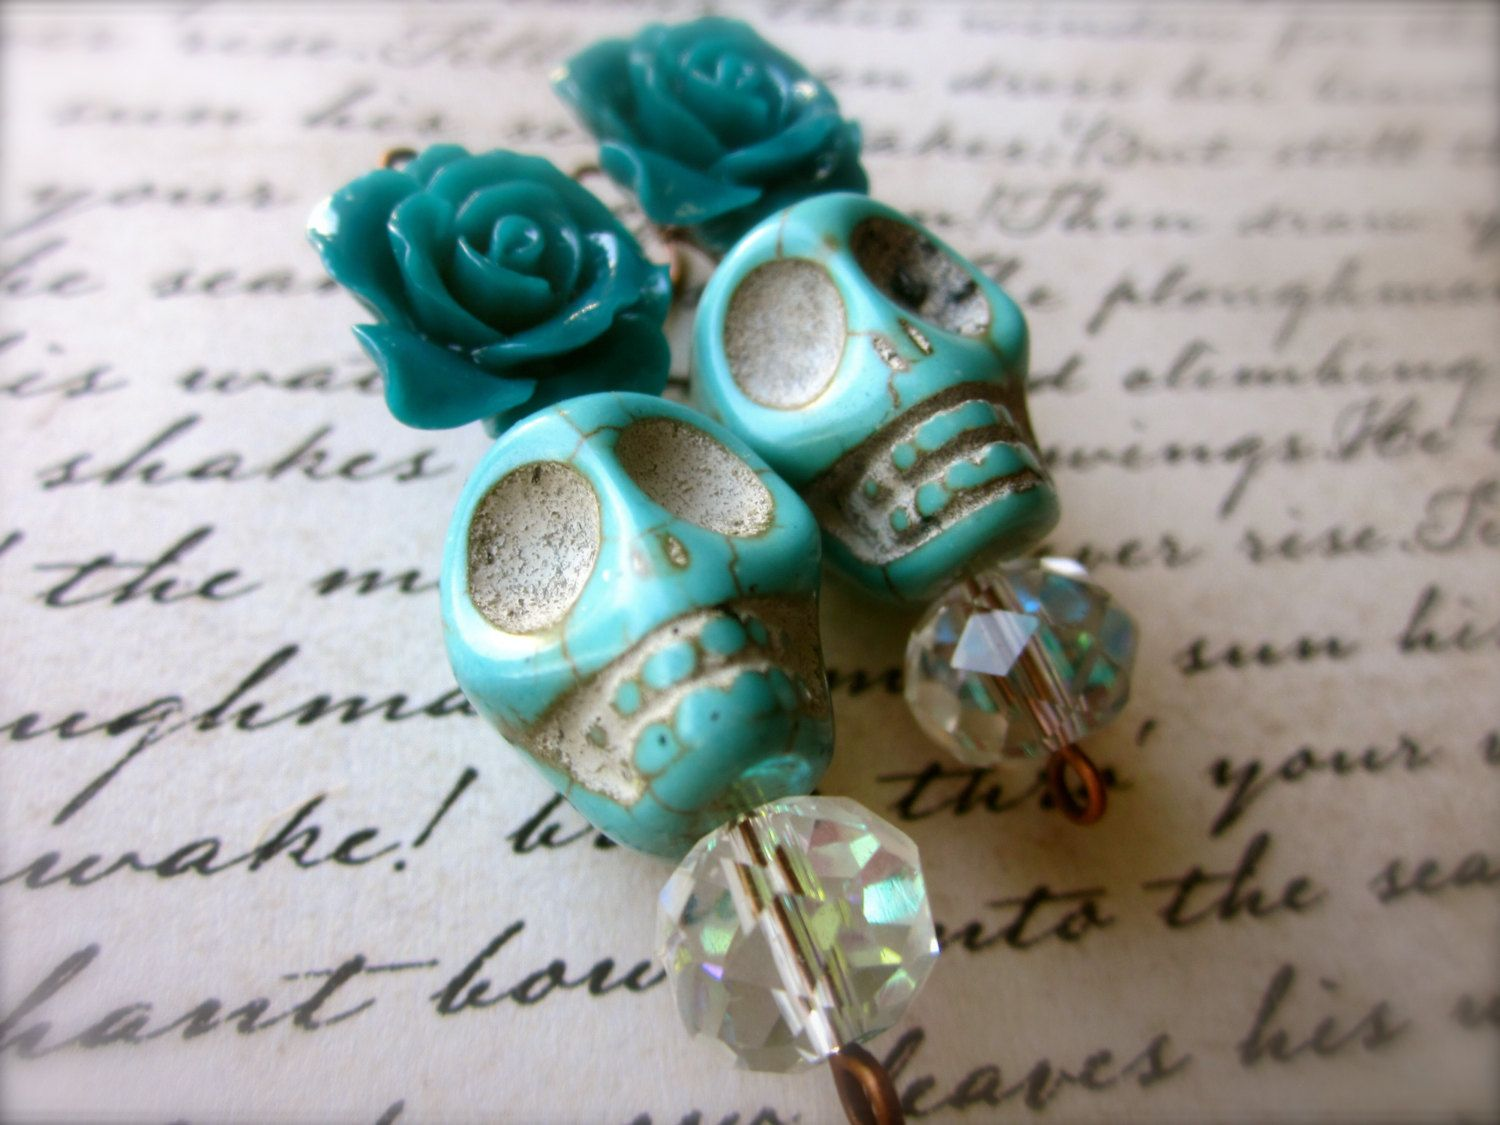 Teal Turquoise Day of the Dead Earrings - Frida Kahlo Inspired - Sugar Skull Jewelry - Dia De Los Muertos Earrings by SugarSkullsJewelry on Etsy